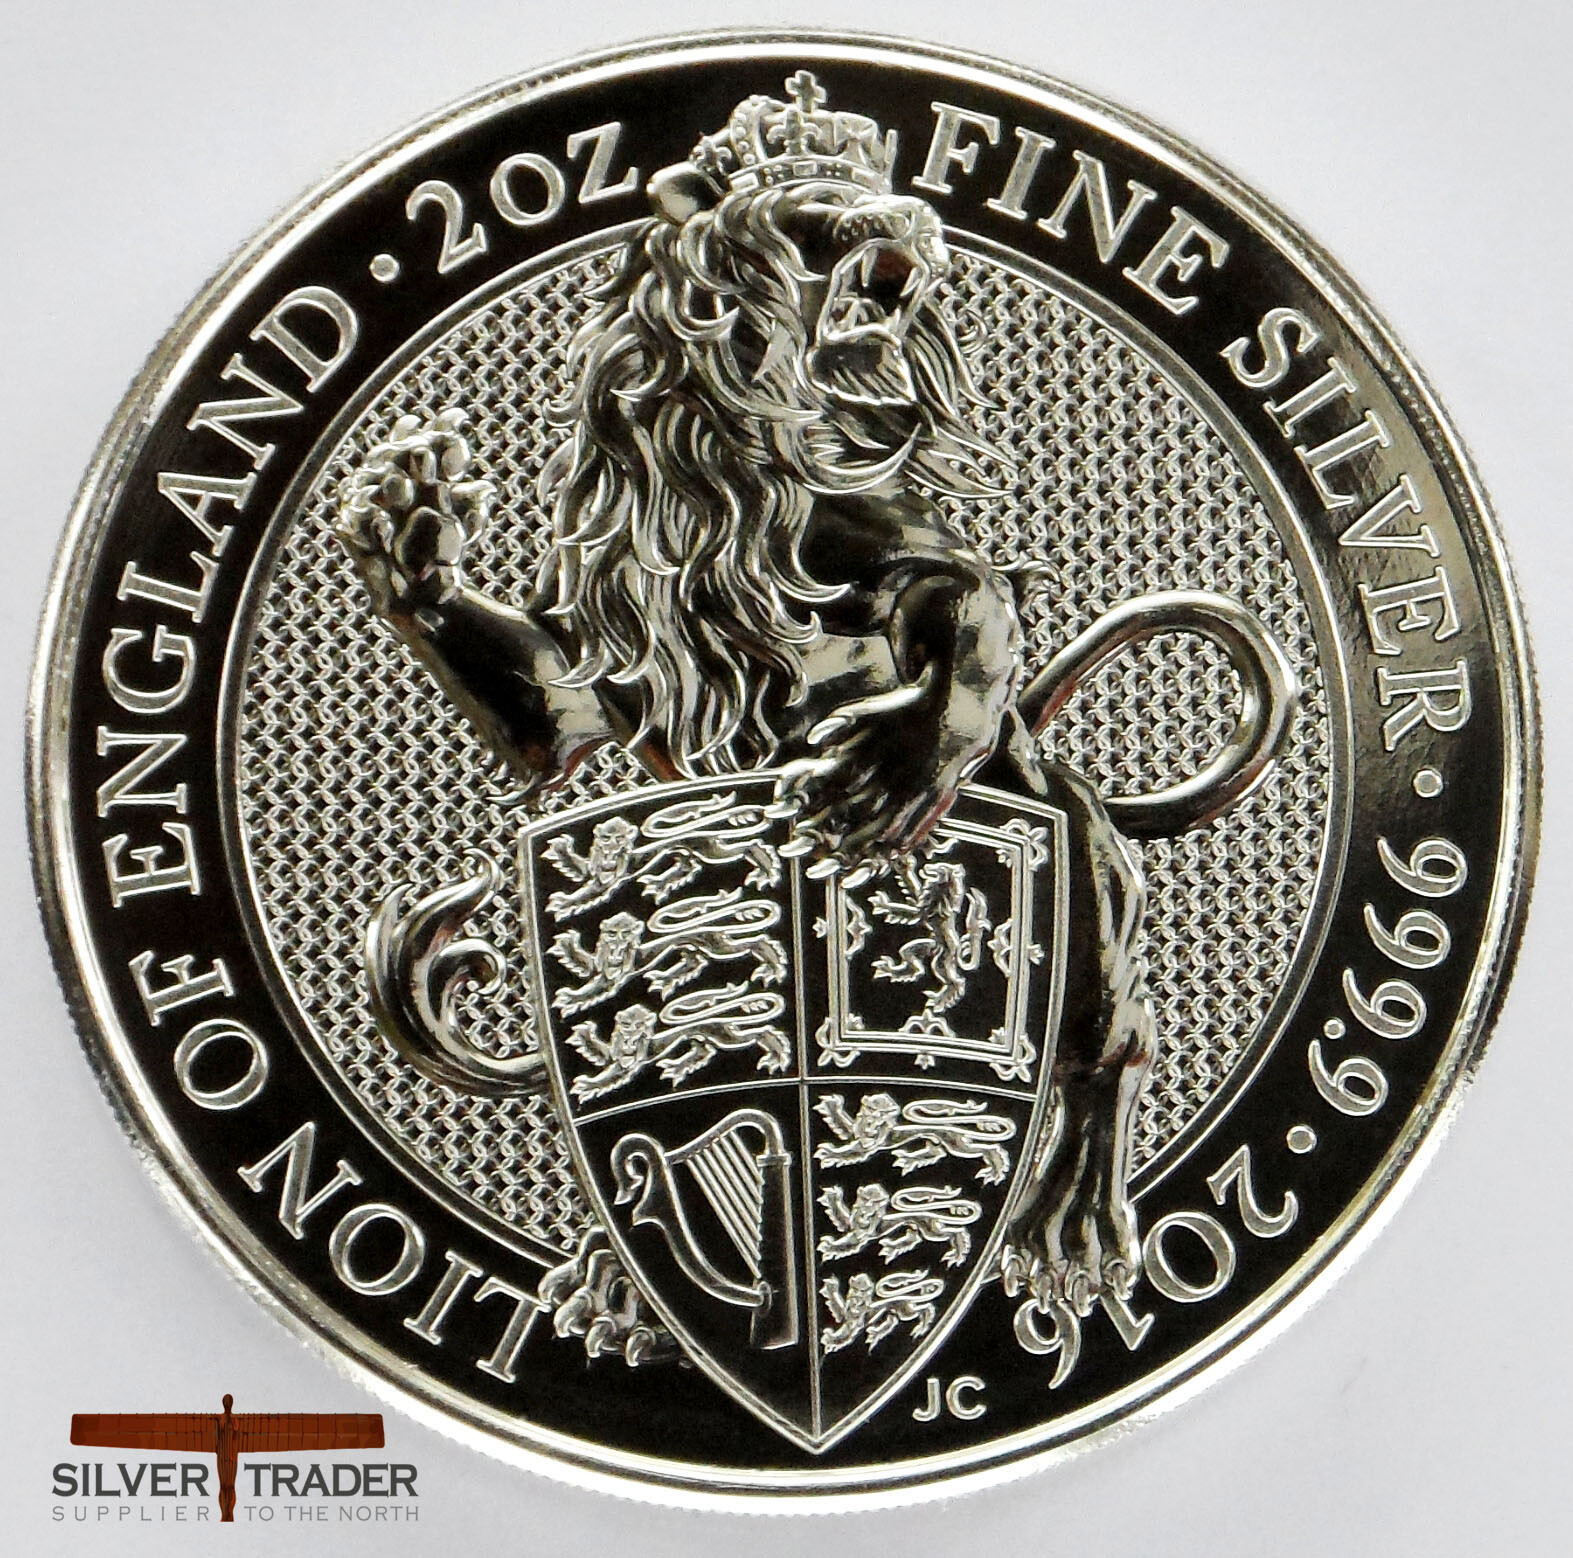 2016 Lion of England Queens Beasts 2 ounce bullion Coin